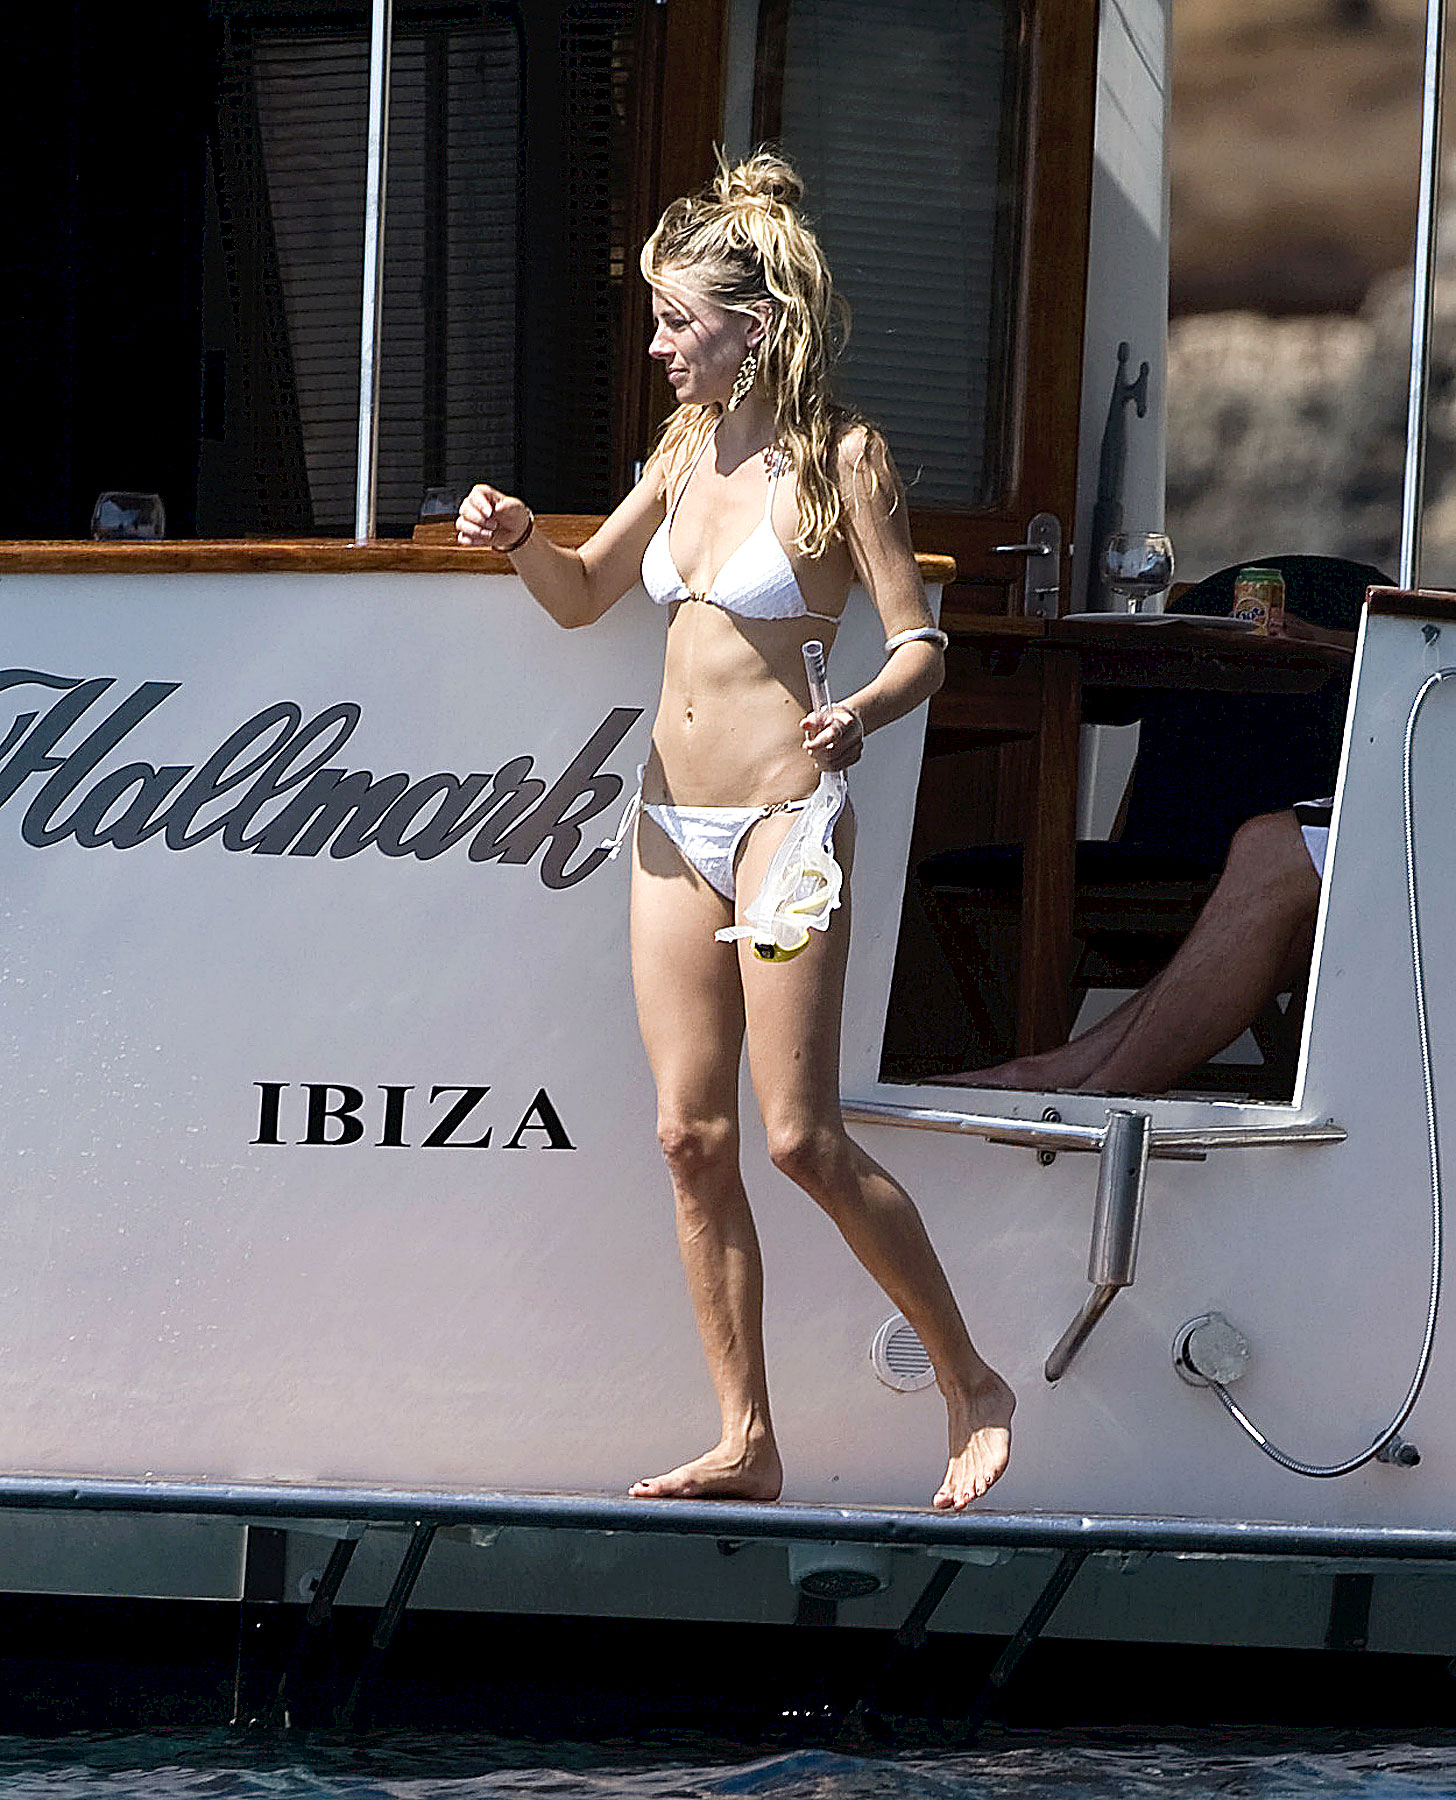 PHOTO GALLERY: Sienna Miller's Bikini Boating